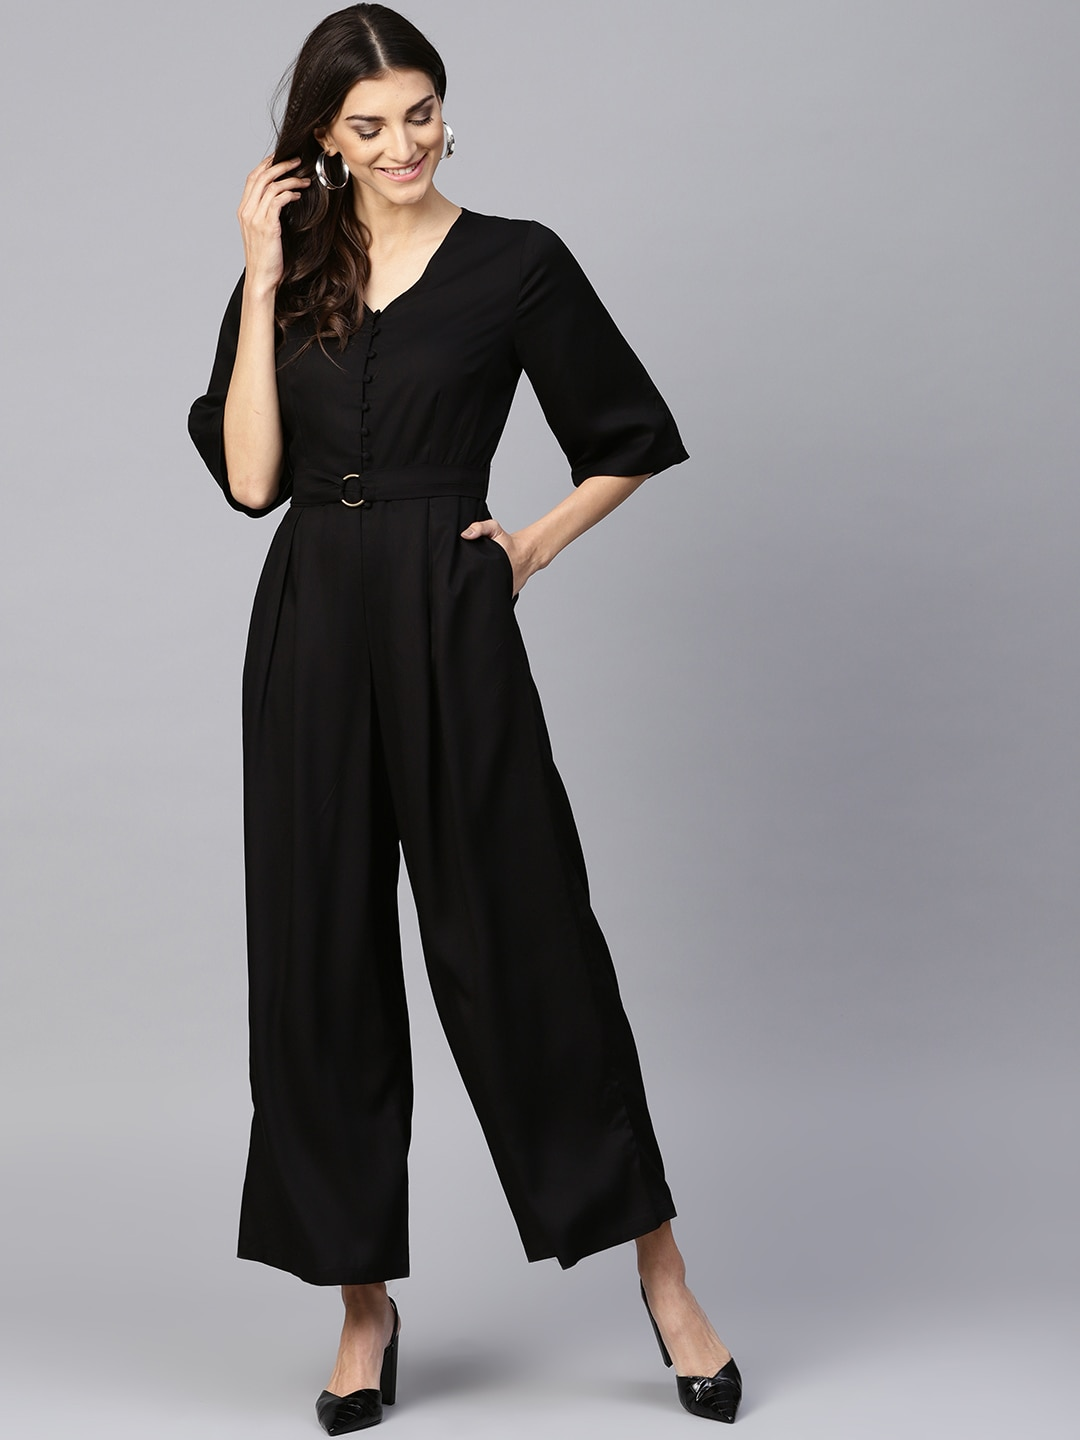 708e61e66c Women s Jumpsuits - Buy Jumpsuits for Women Online in India